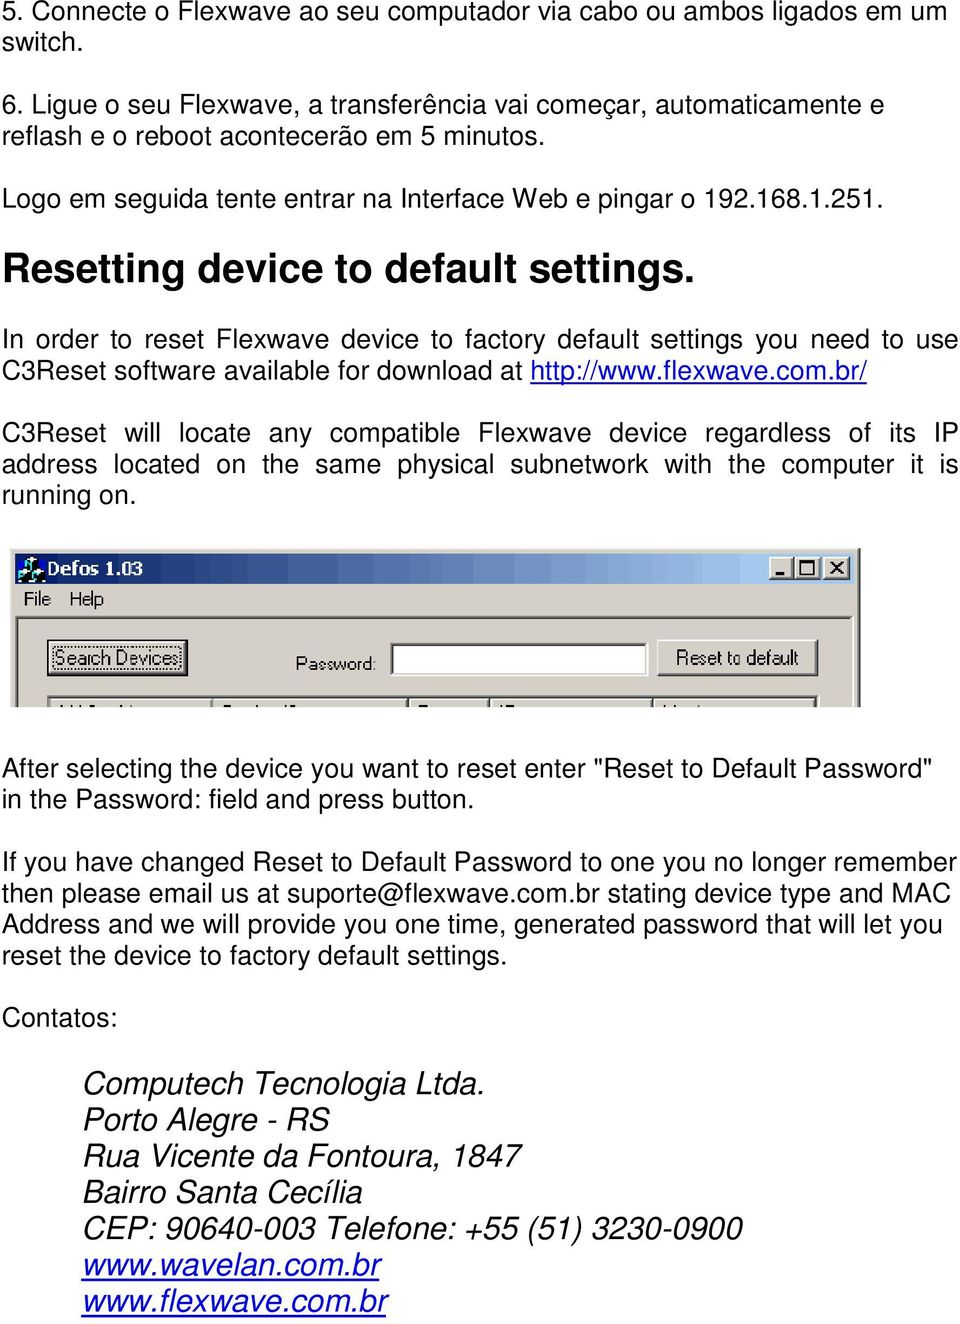 In order to reset Flexwave device to factory default settings you need to use C3Reset software available for download at http://www.flexwave.com.